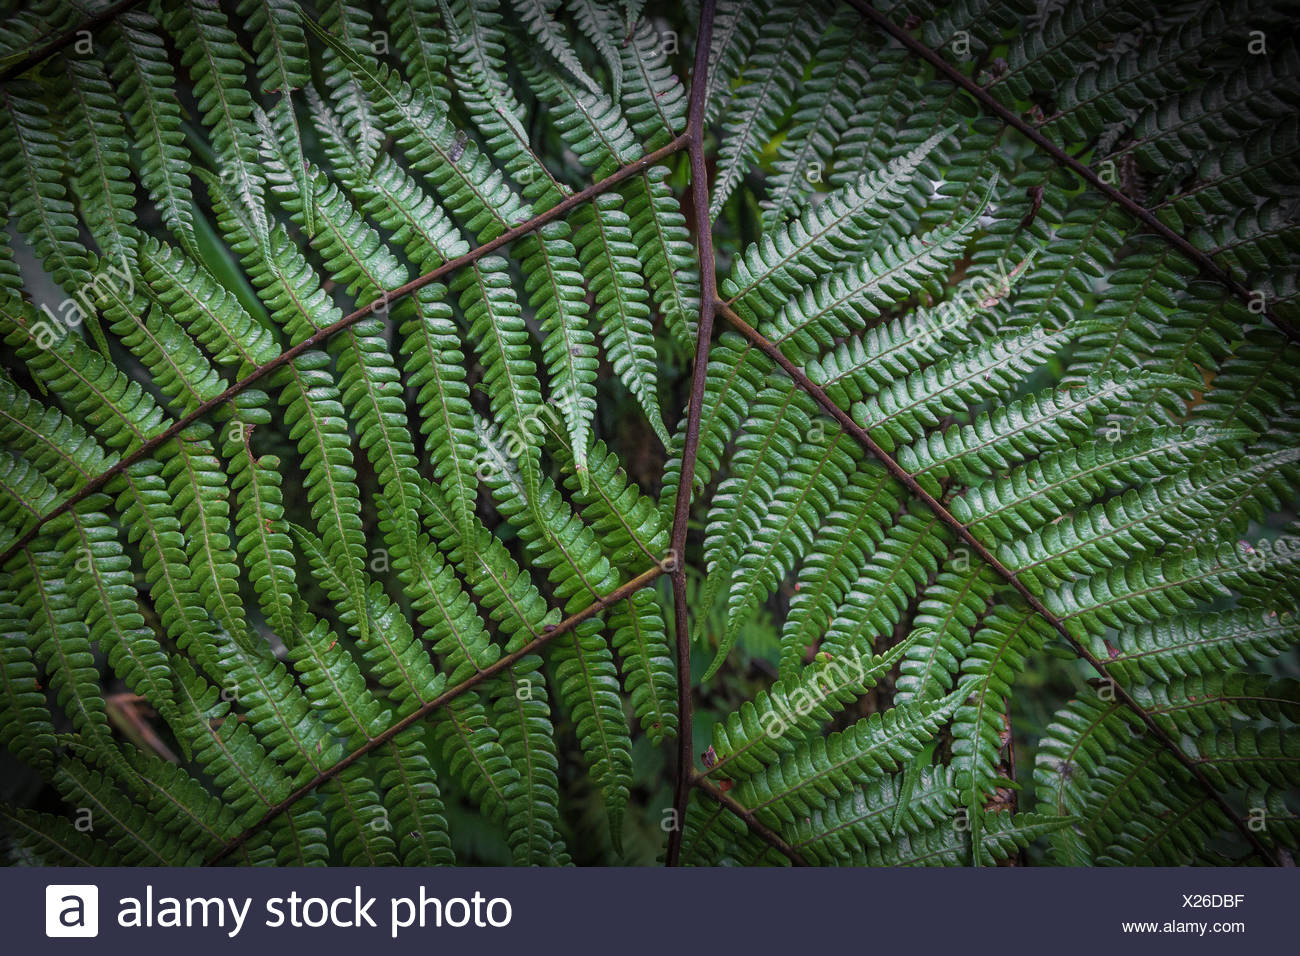 close up of fern leaves. nature texture background. macro green